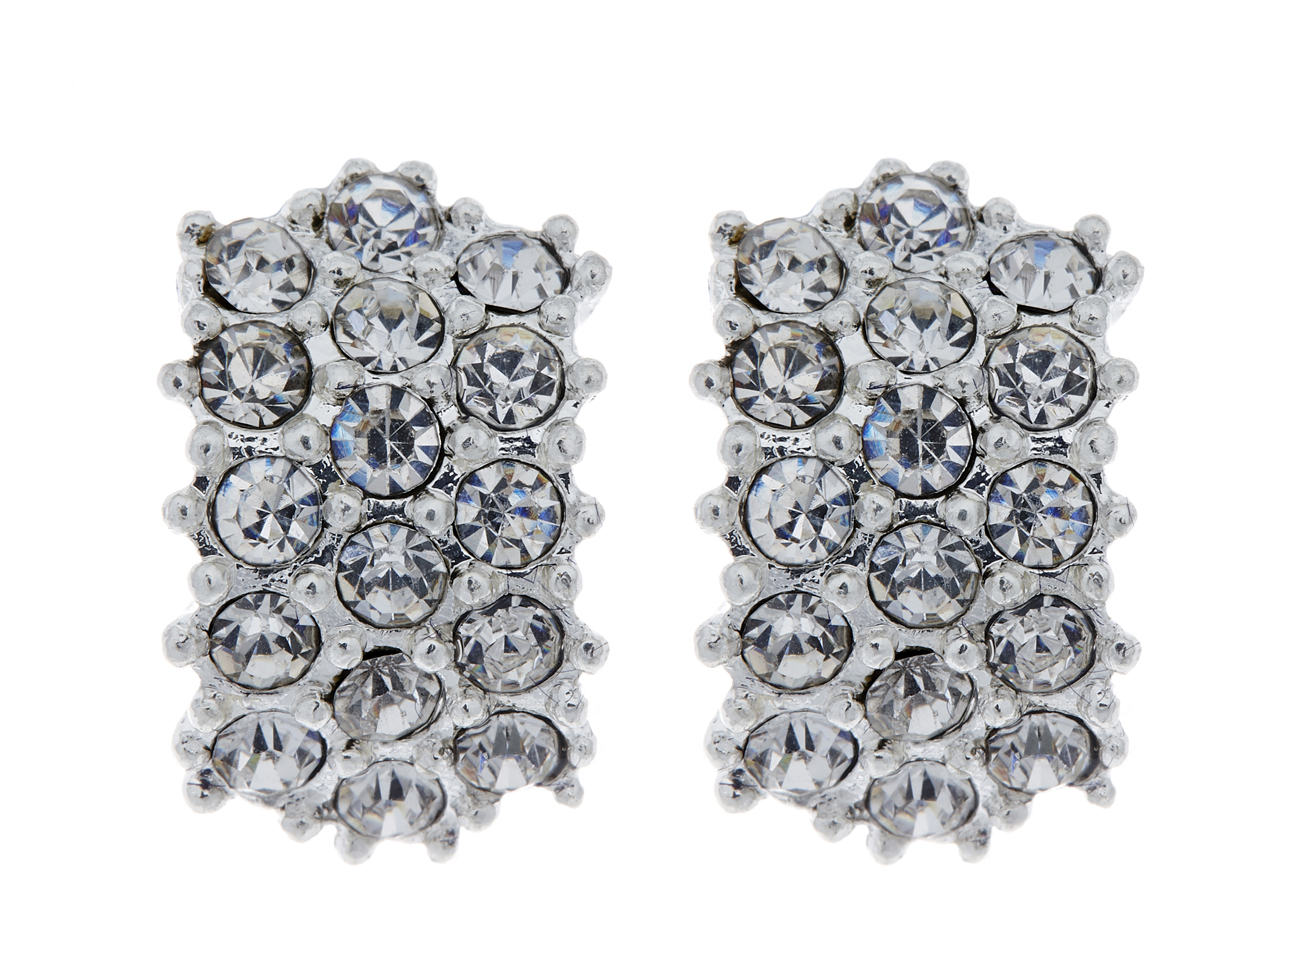 Clip On Earrings - Emily - silver stud earring with clear diamante crystals